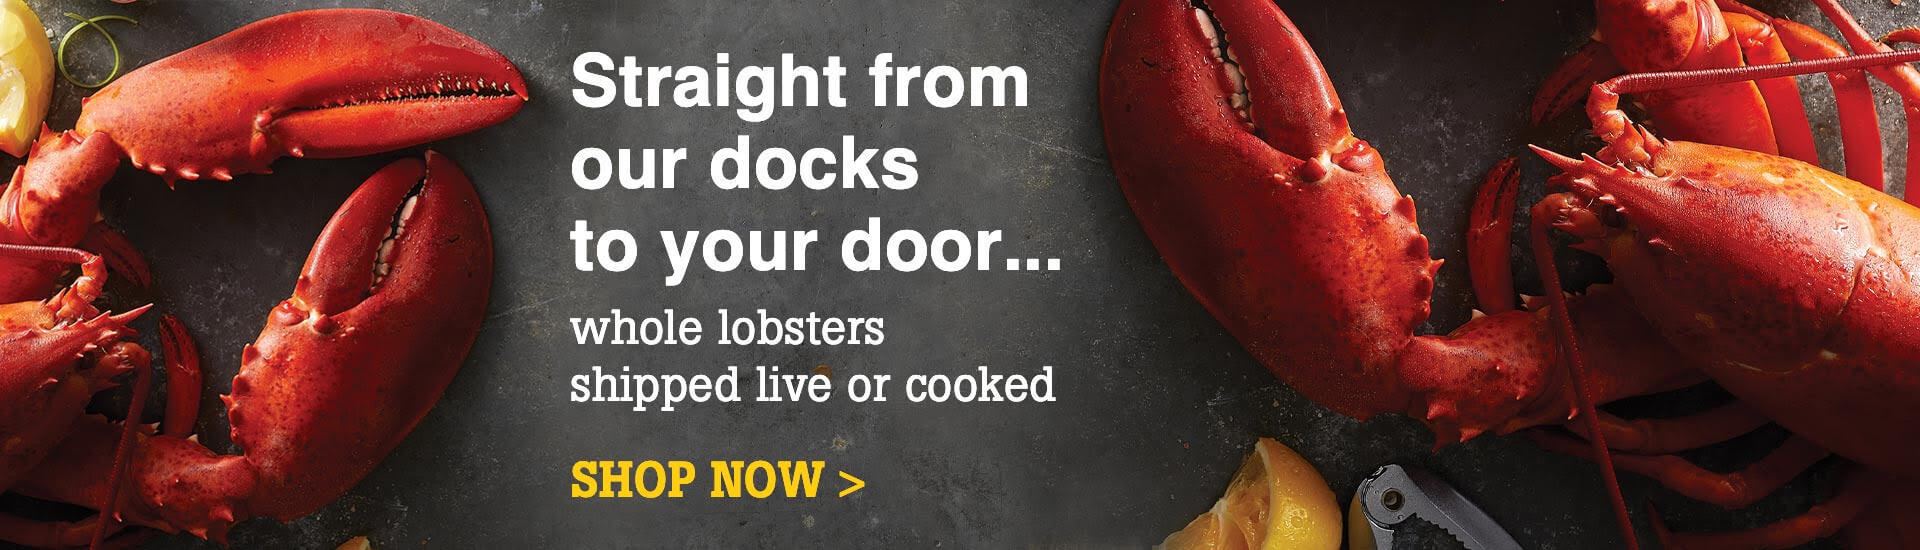 Fresh Lobsters - delivered straight from our docks to your door